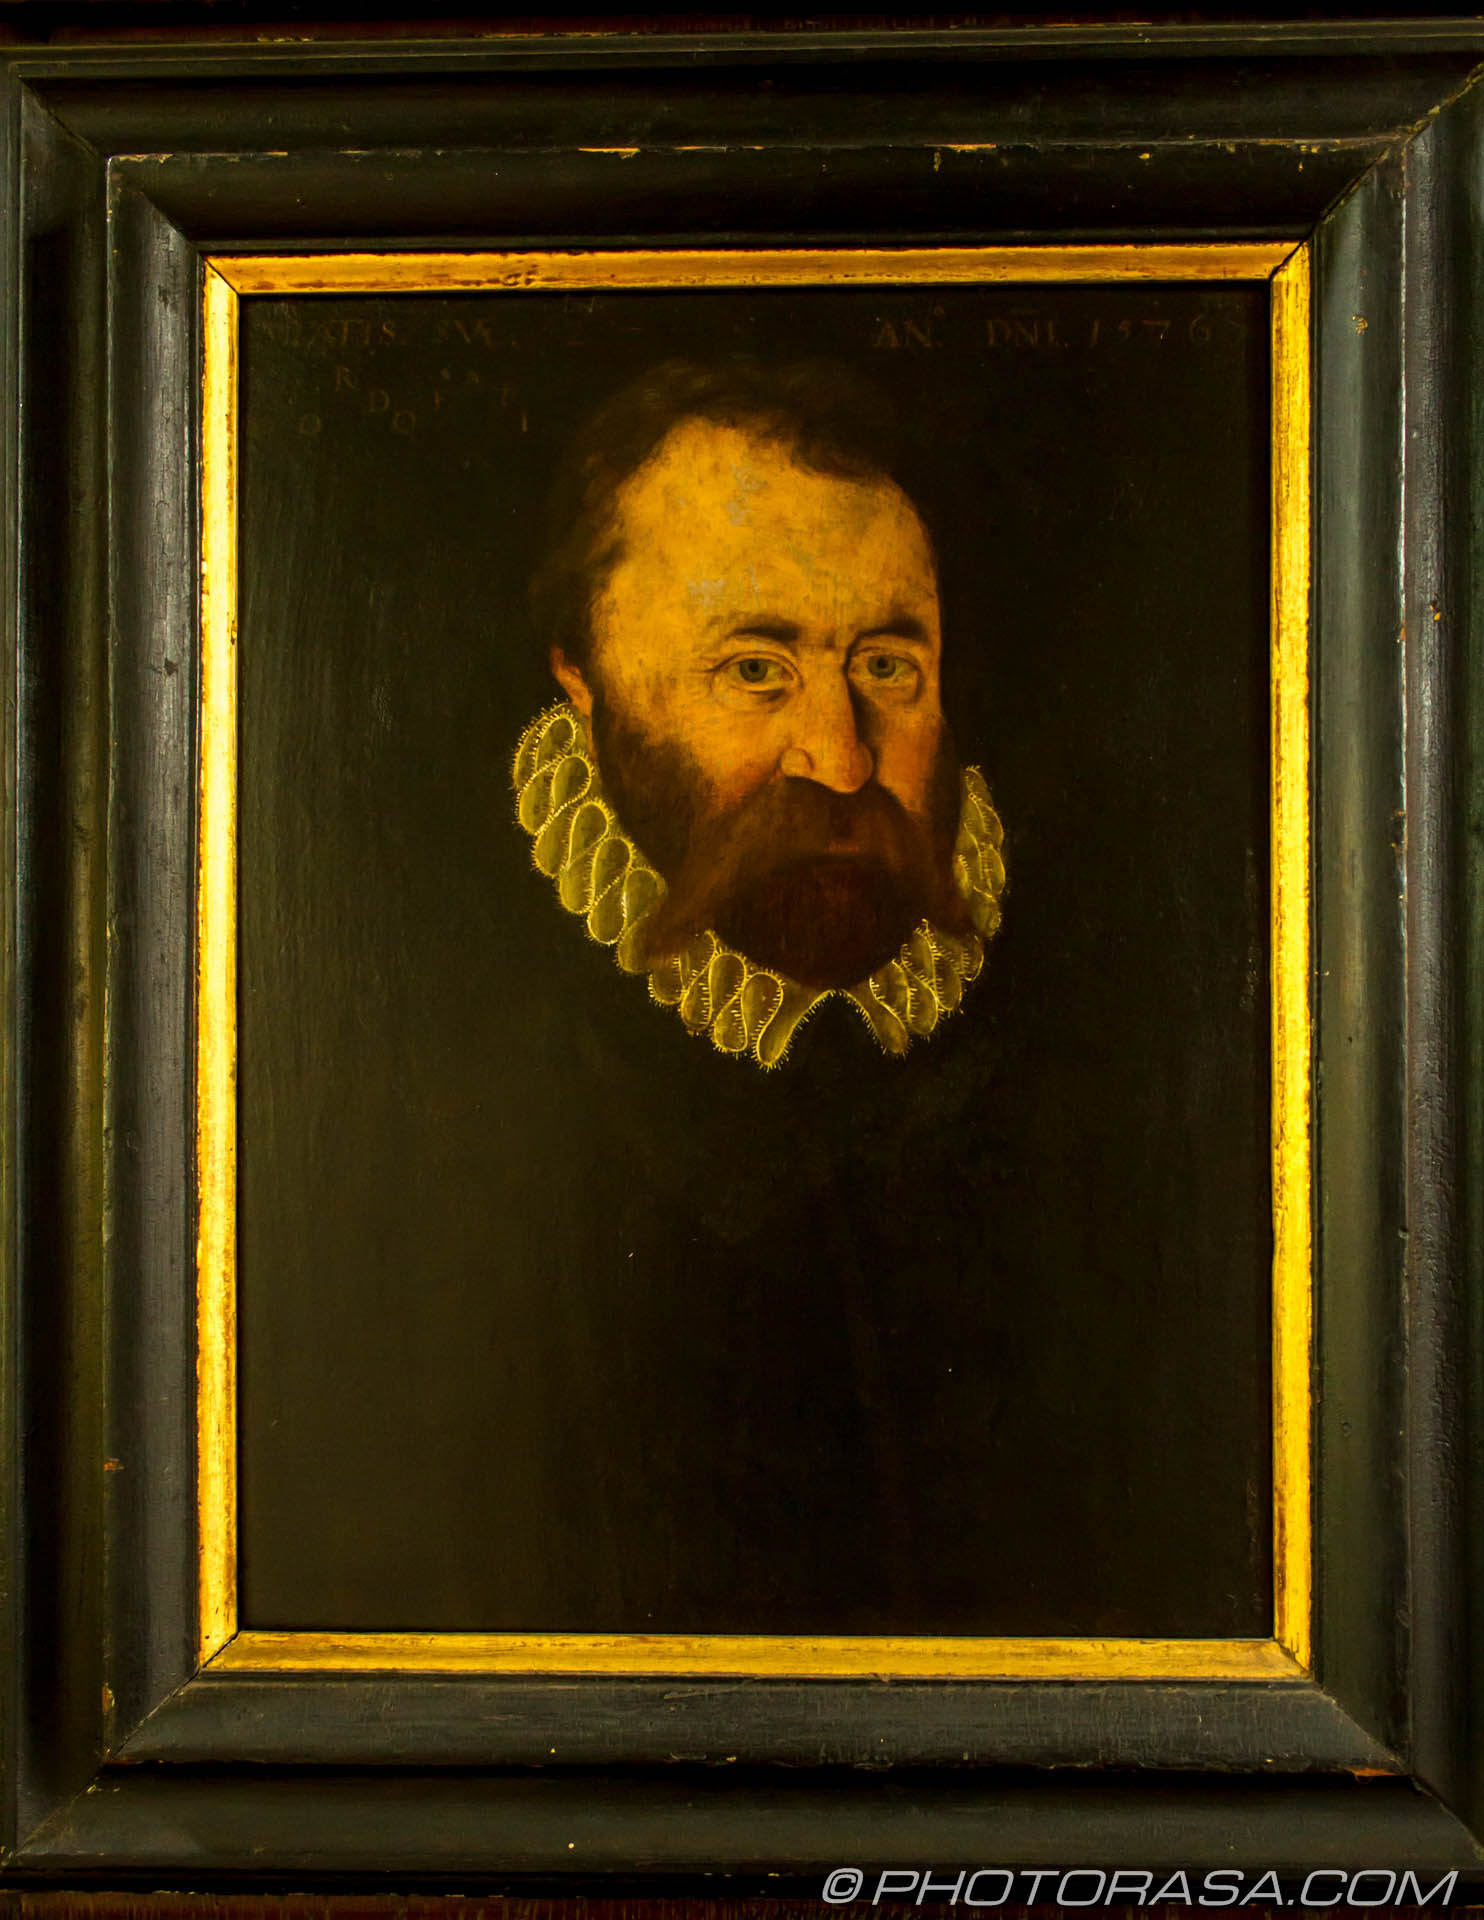 http://photorasa.com/stoneacre-house-paintings/elizabethan-picture-of-bearded-man-in-small-ruff/